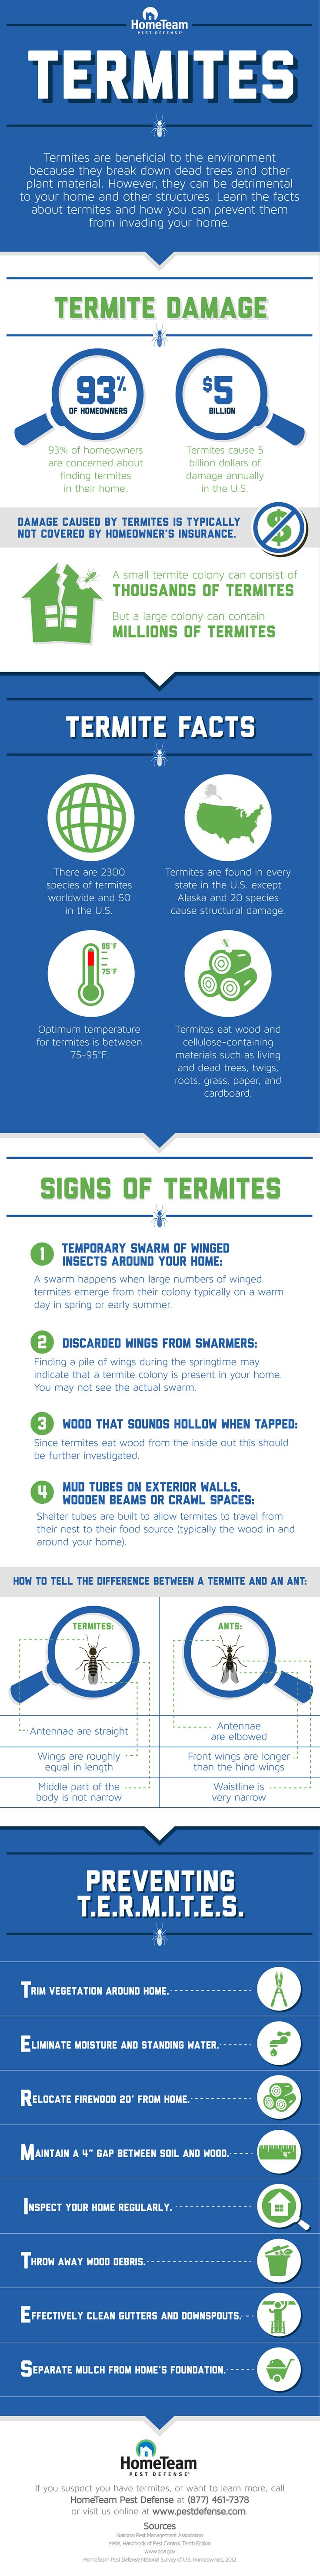 HomeTeam shares termite facts, signs and tips.